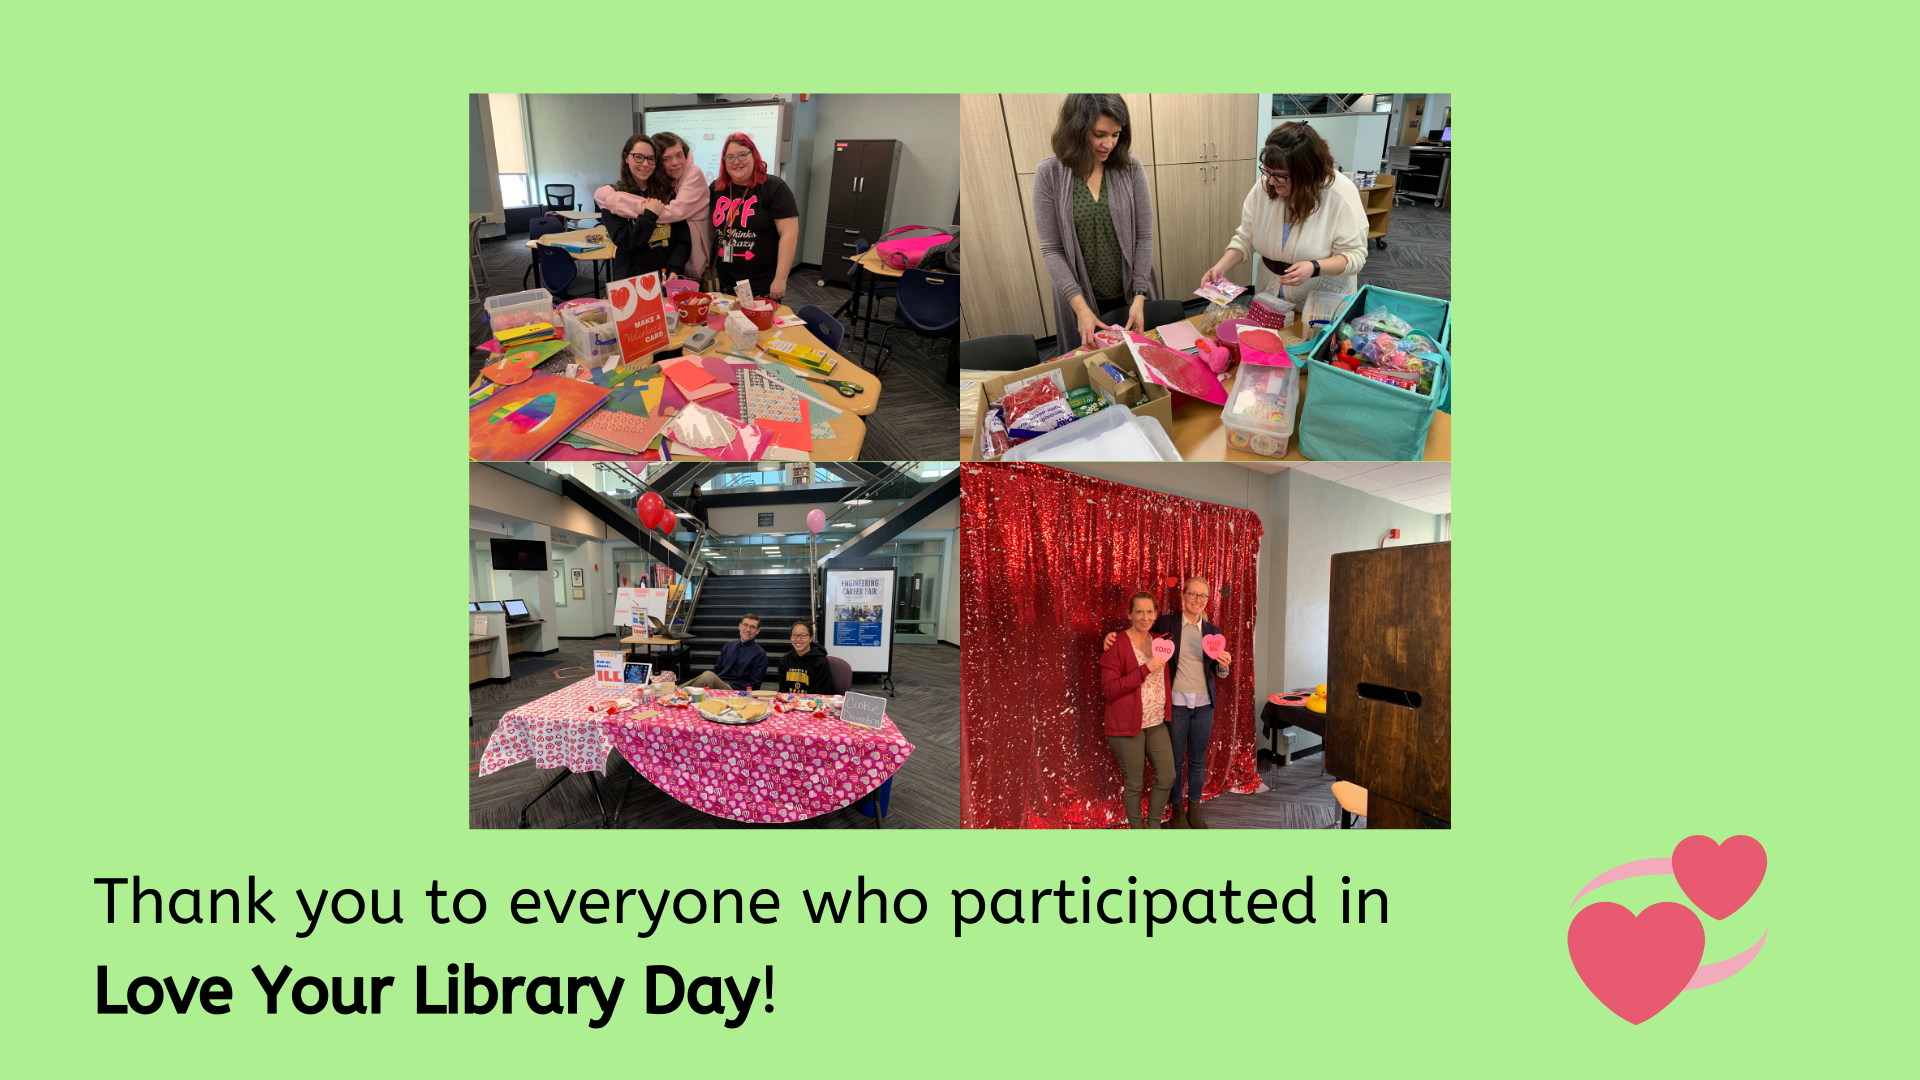 Thank you to everyone who participated in Love Your Library Day!